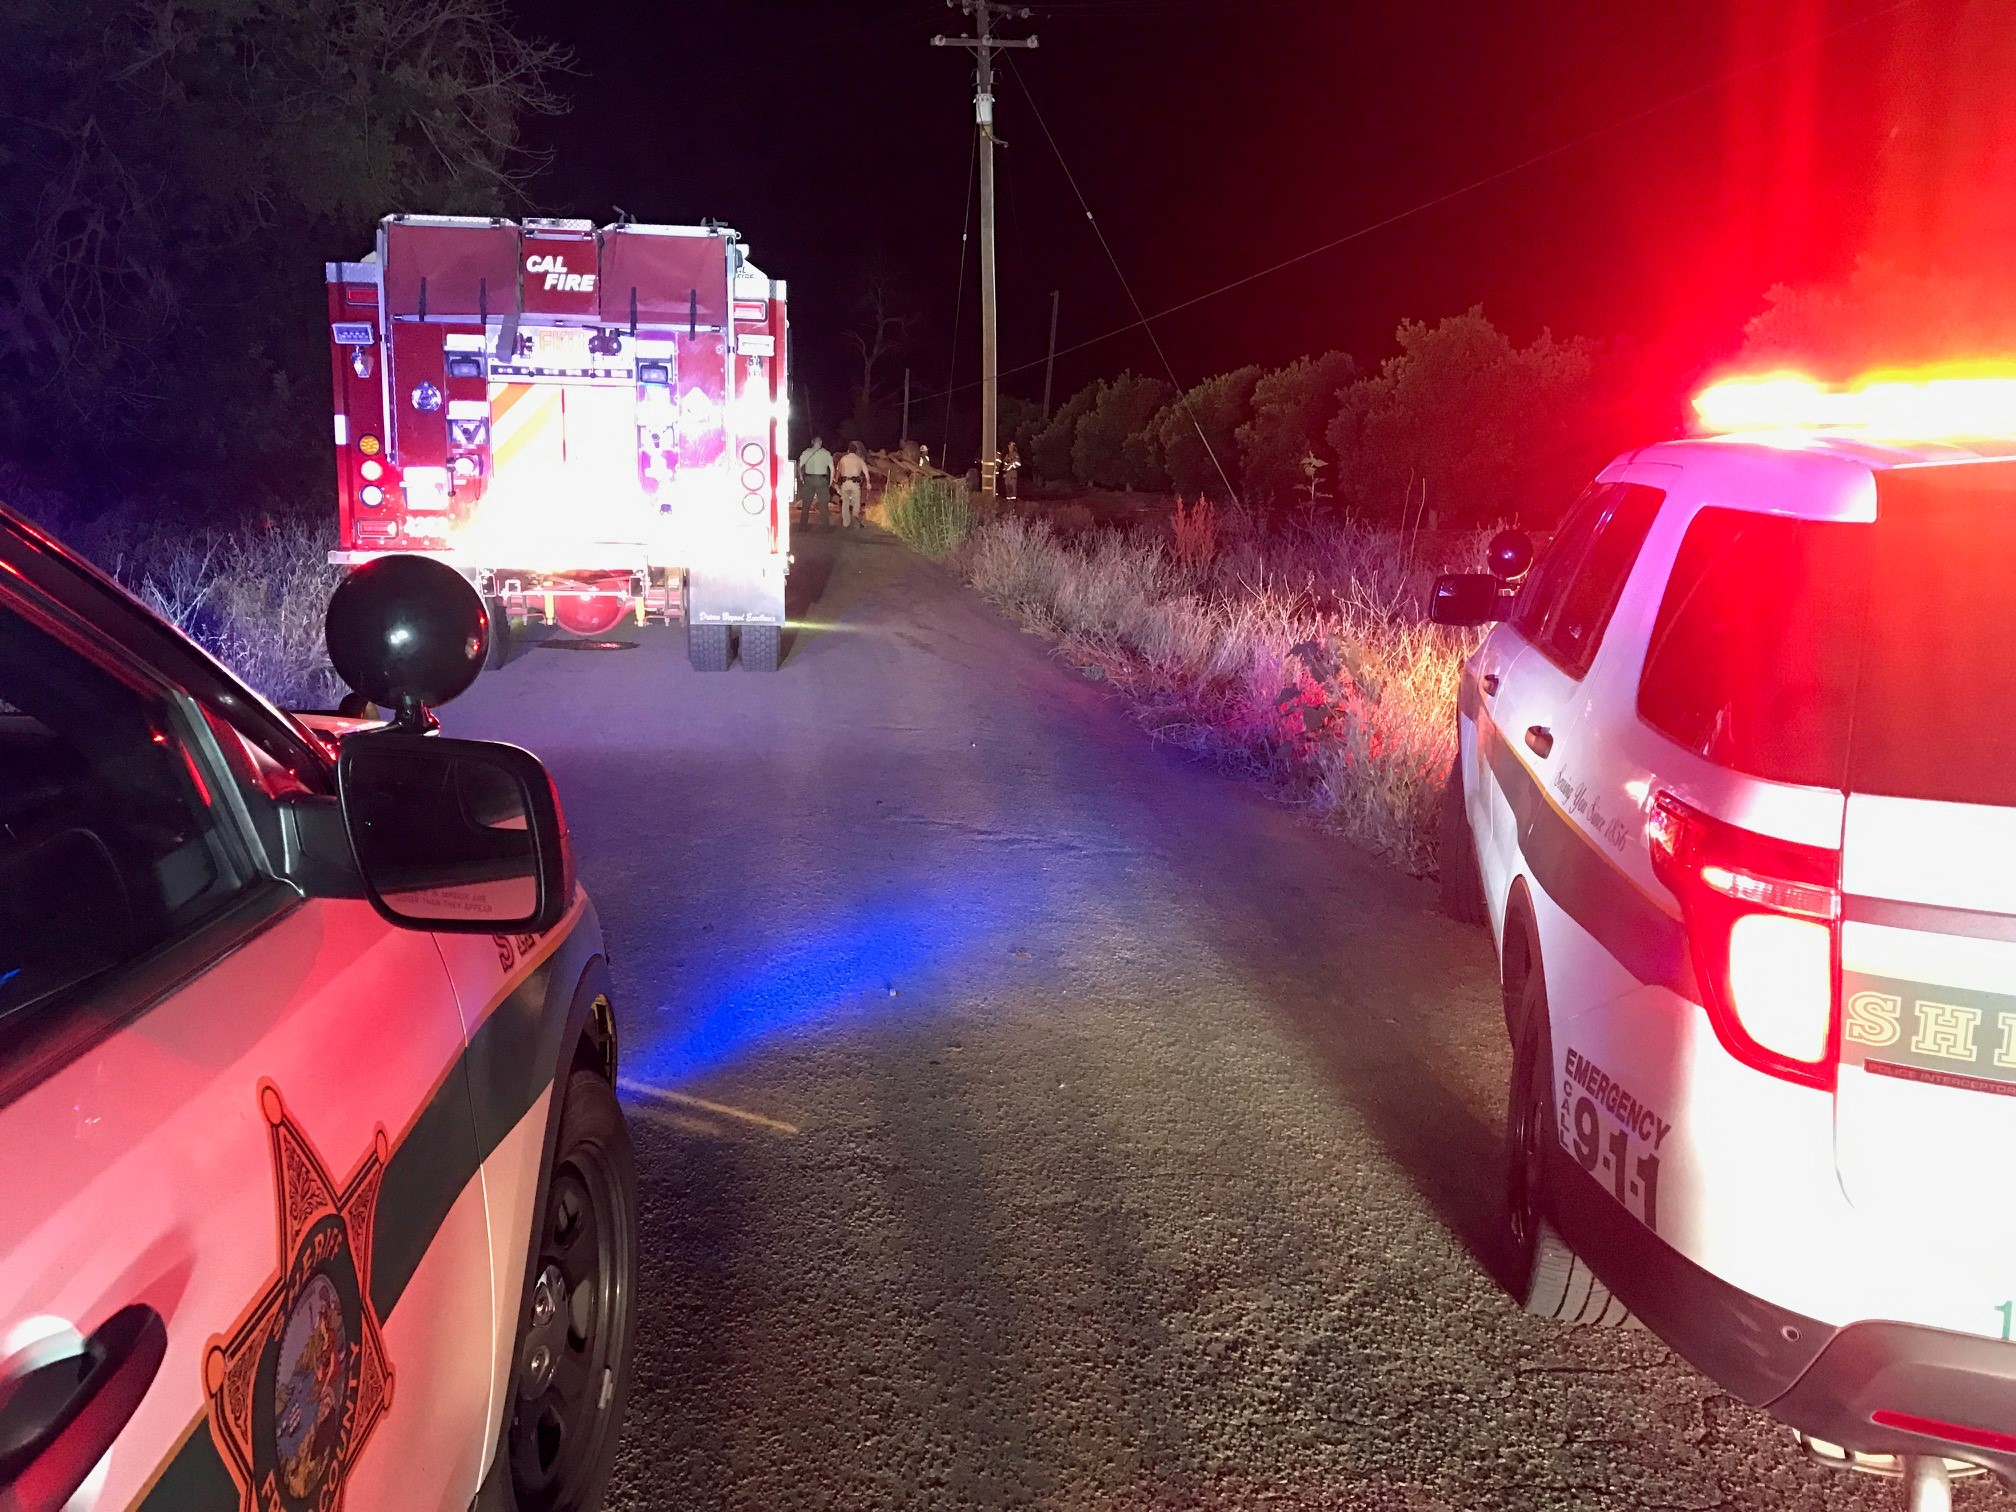 A woman died early Wednesday morning after crashing her pick-up truck into a pole in Reedley, according to the CHP. Photo: FOX26 News Photographer Ryan Hudgins